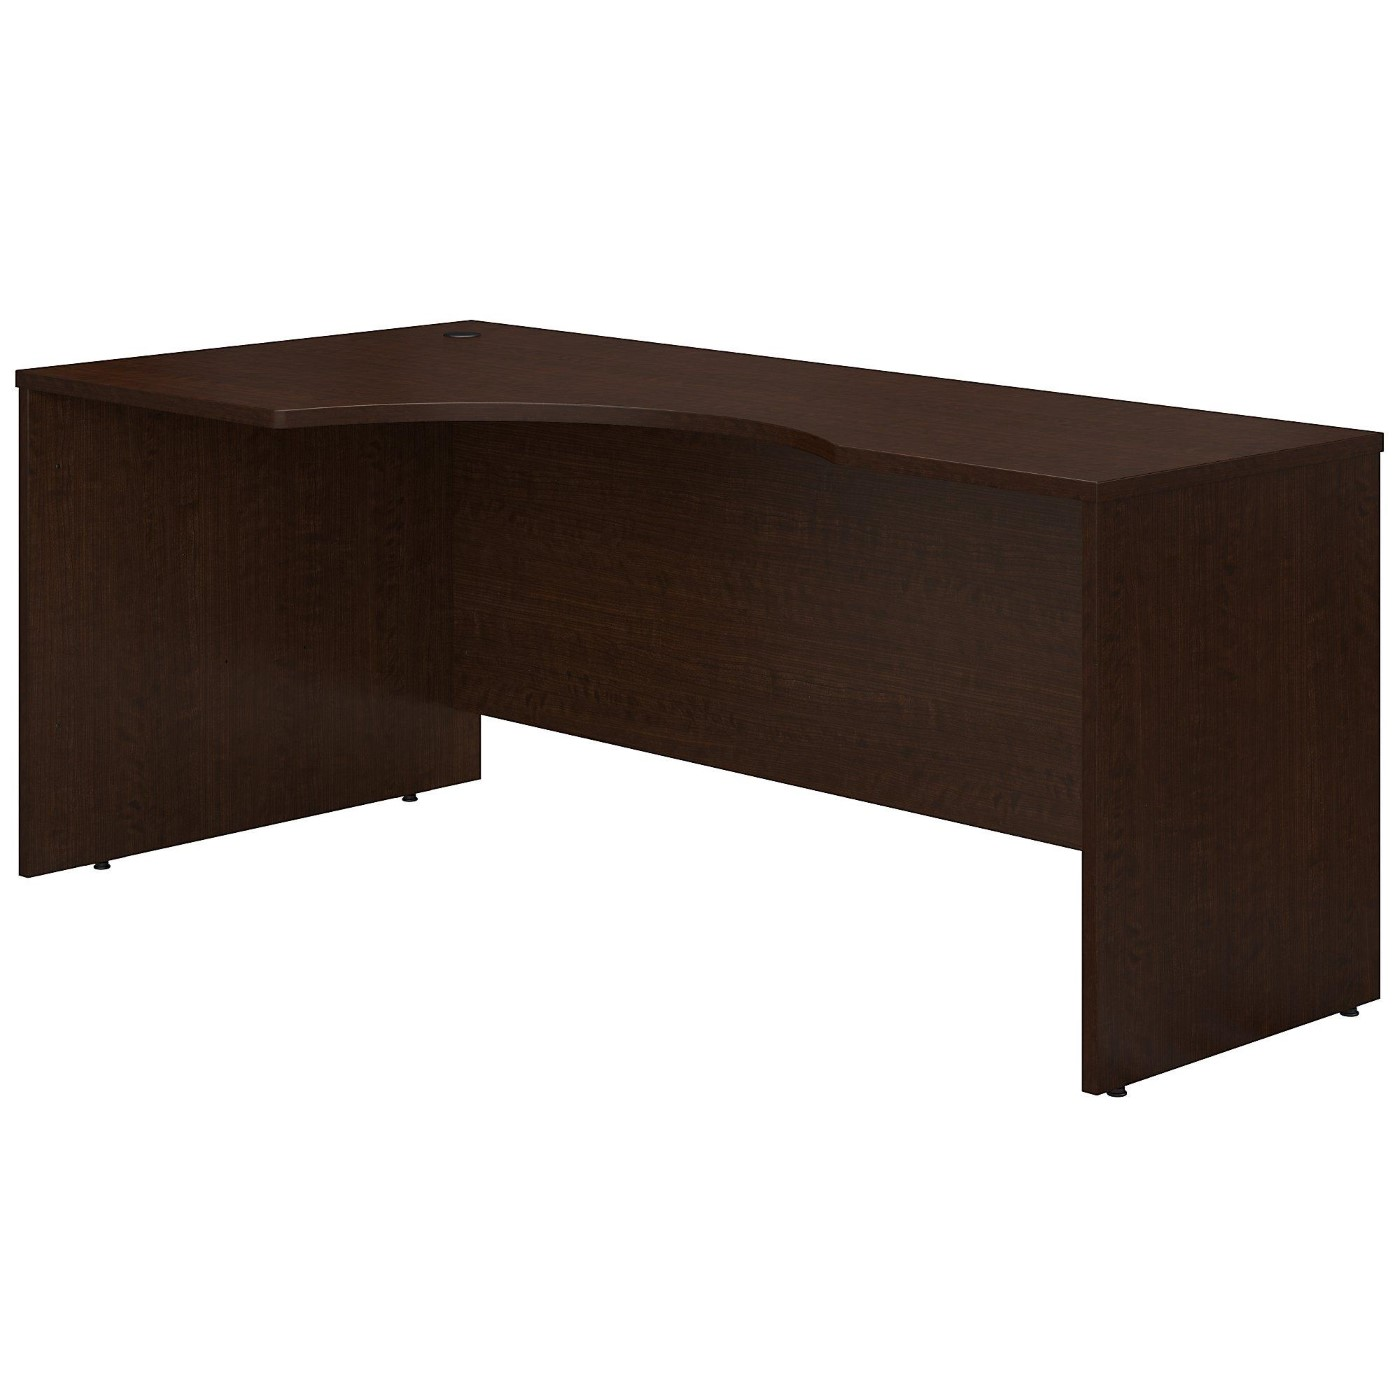 BUSH BUSINESS FURNITURE SERIES C 72W RIGHT HANDED CORNER DESK. FREE SHIPPING</font></b></font>&#x1F384<font color=red><b>ERGONOMICHOME HOLIDAY SALE - ENDS DEC. 17, 2019</b></font>&#x1F384